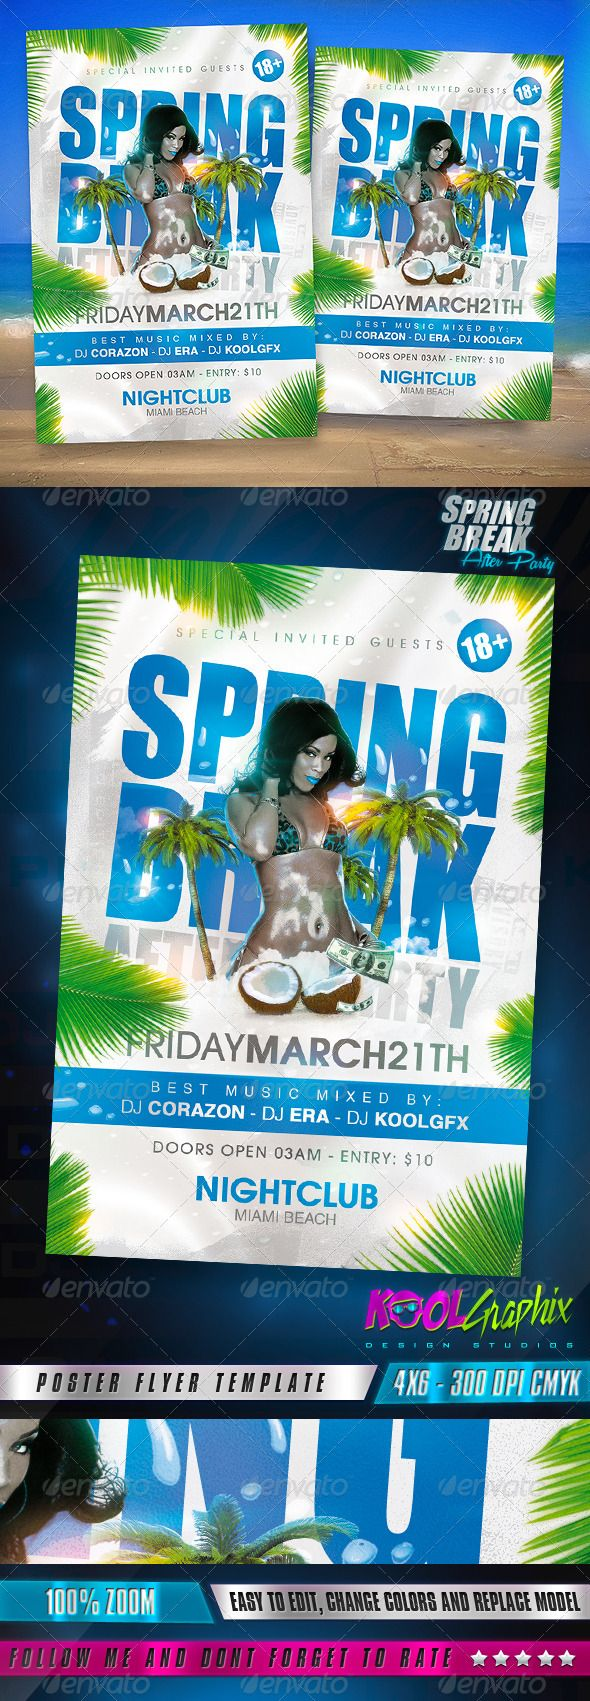 Spring Break After Party Flyer — Photoshop PSD #event #after • Available her…